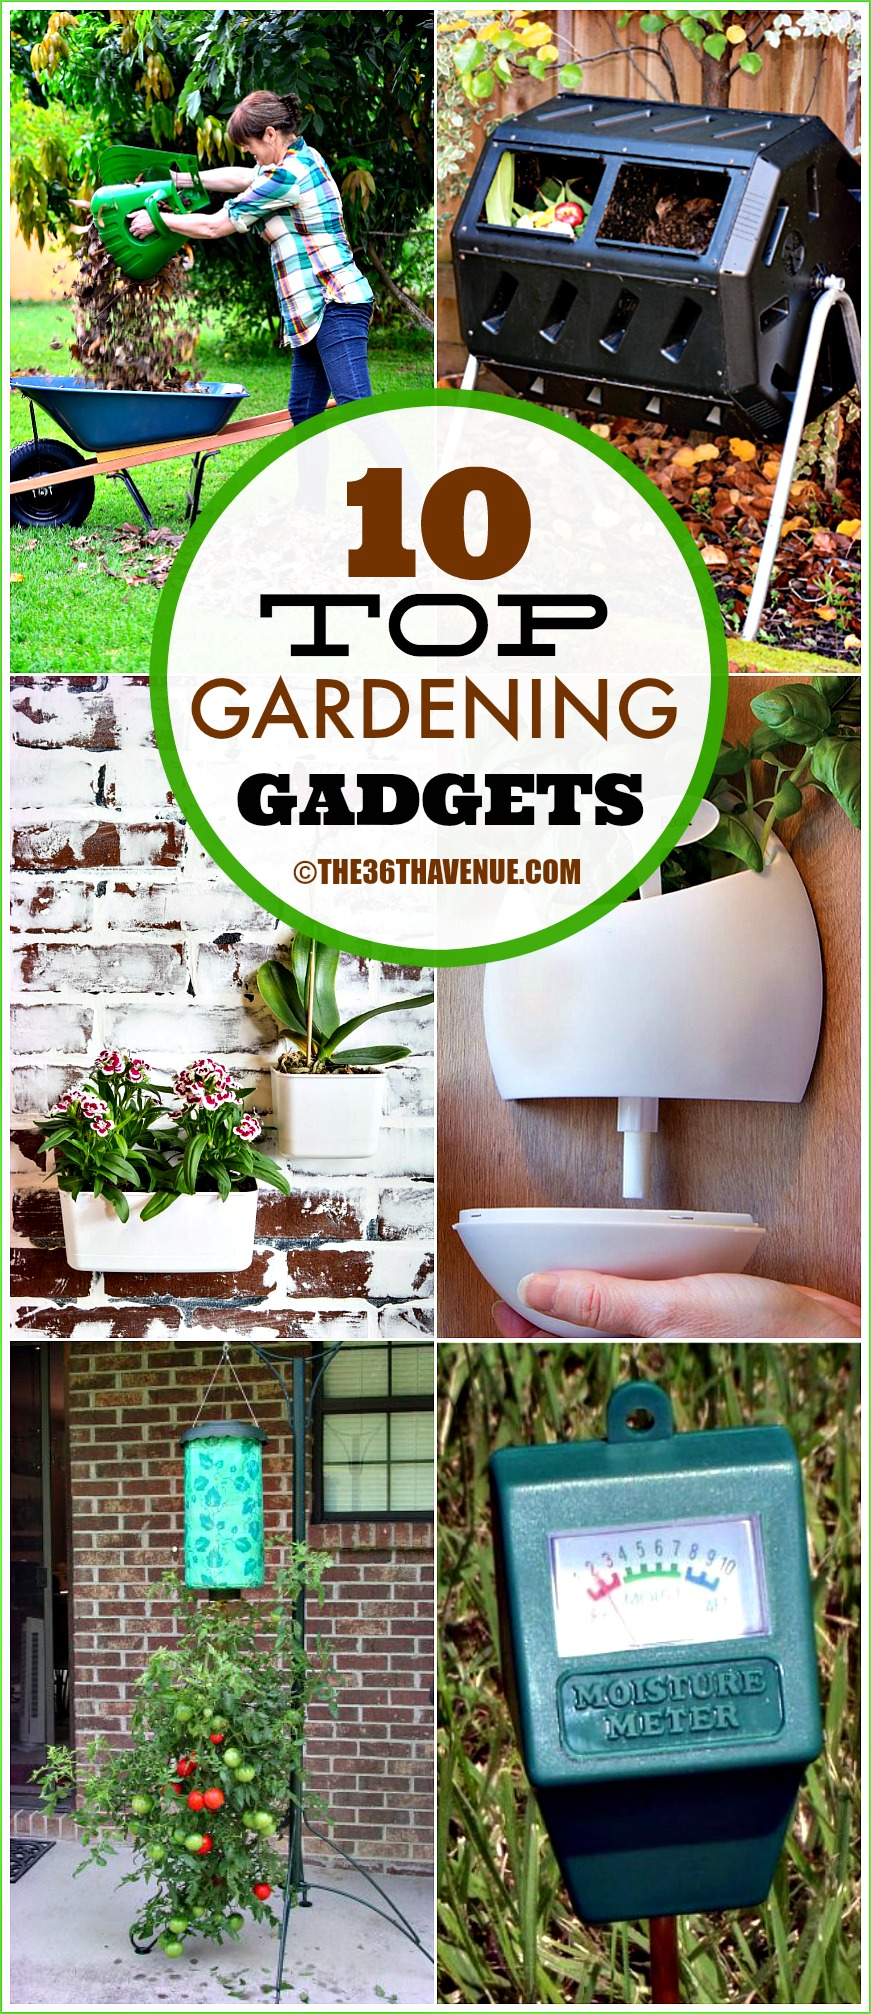 Top 10 Gardening Gadgets the36thavenue.com